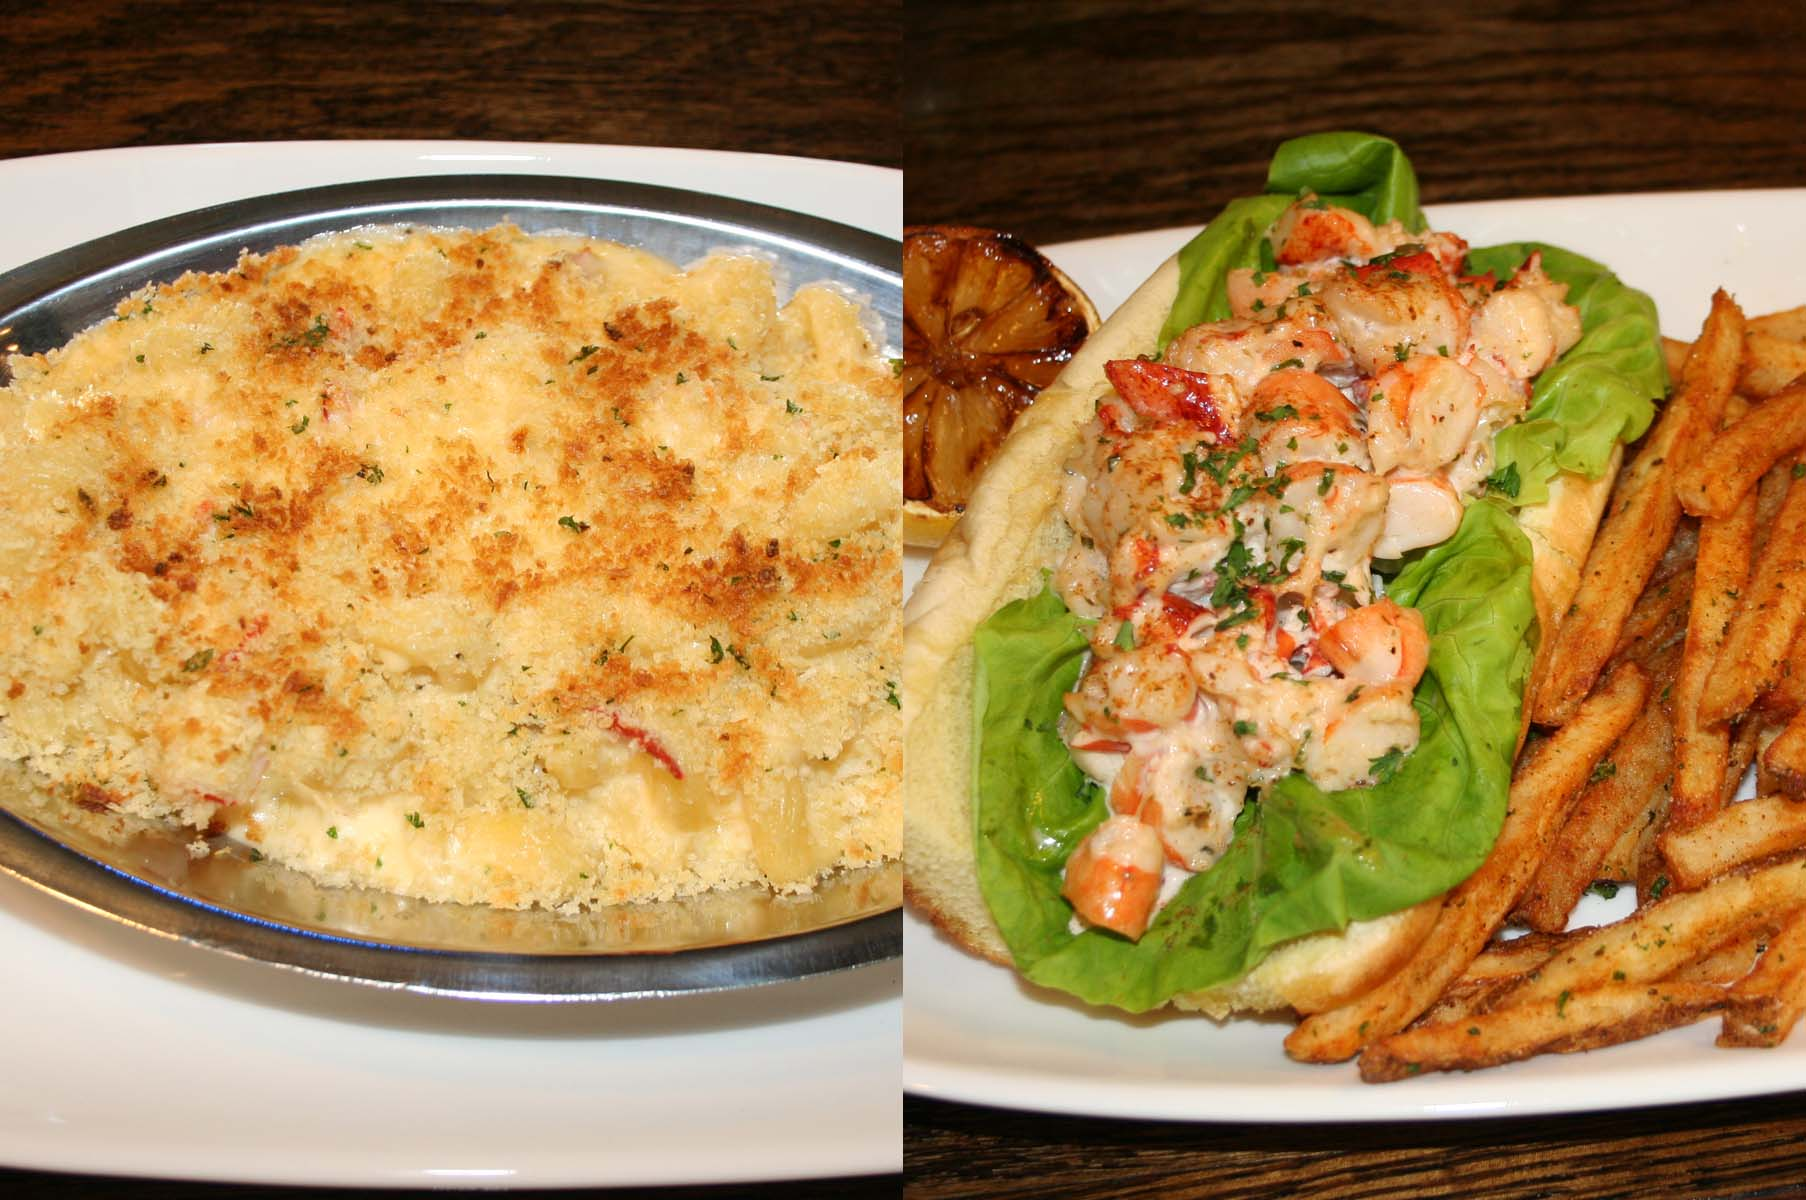 Lobster mac 'n cheese (left) made with Maine lobster, a five cheese blend and cavatappia pasta, and the shrimp and lobster roll with Maine lobster, North Carolina shrimp and tarragon aioli on a butter-toasted roll are on the menu. (Photos: Mark Heckathorn/DC on Heels)